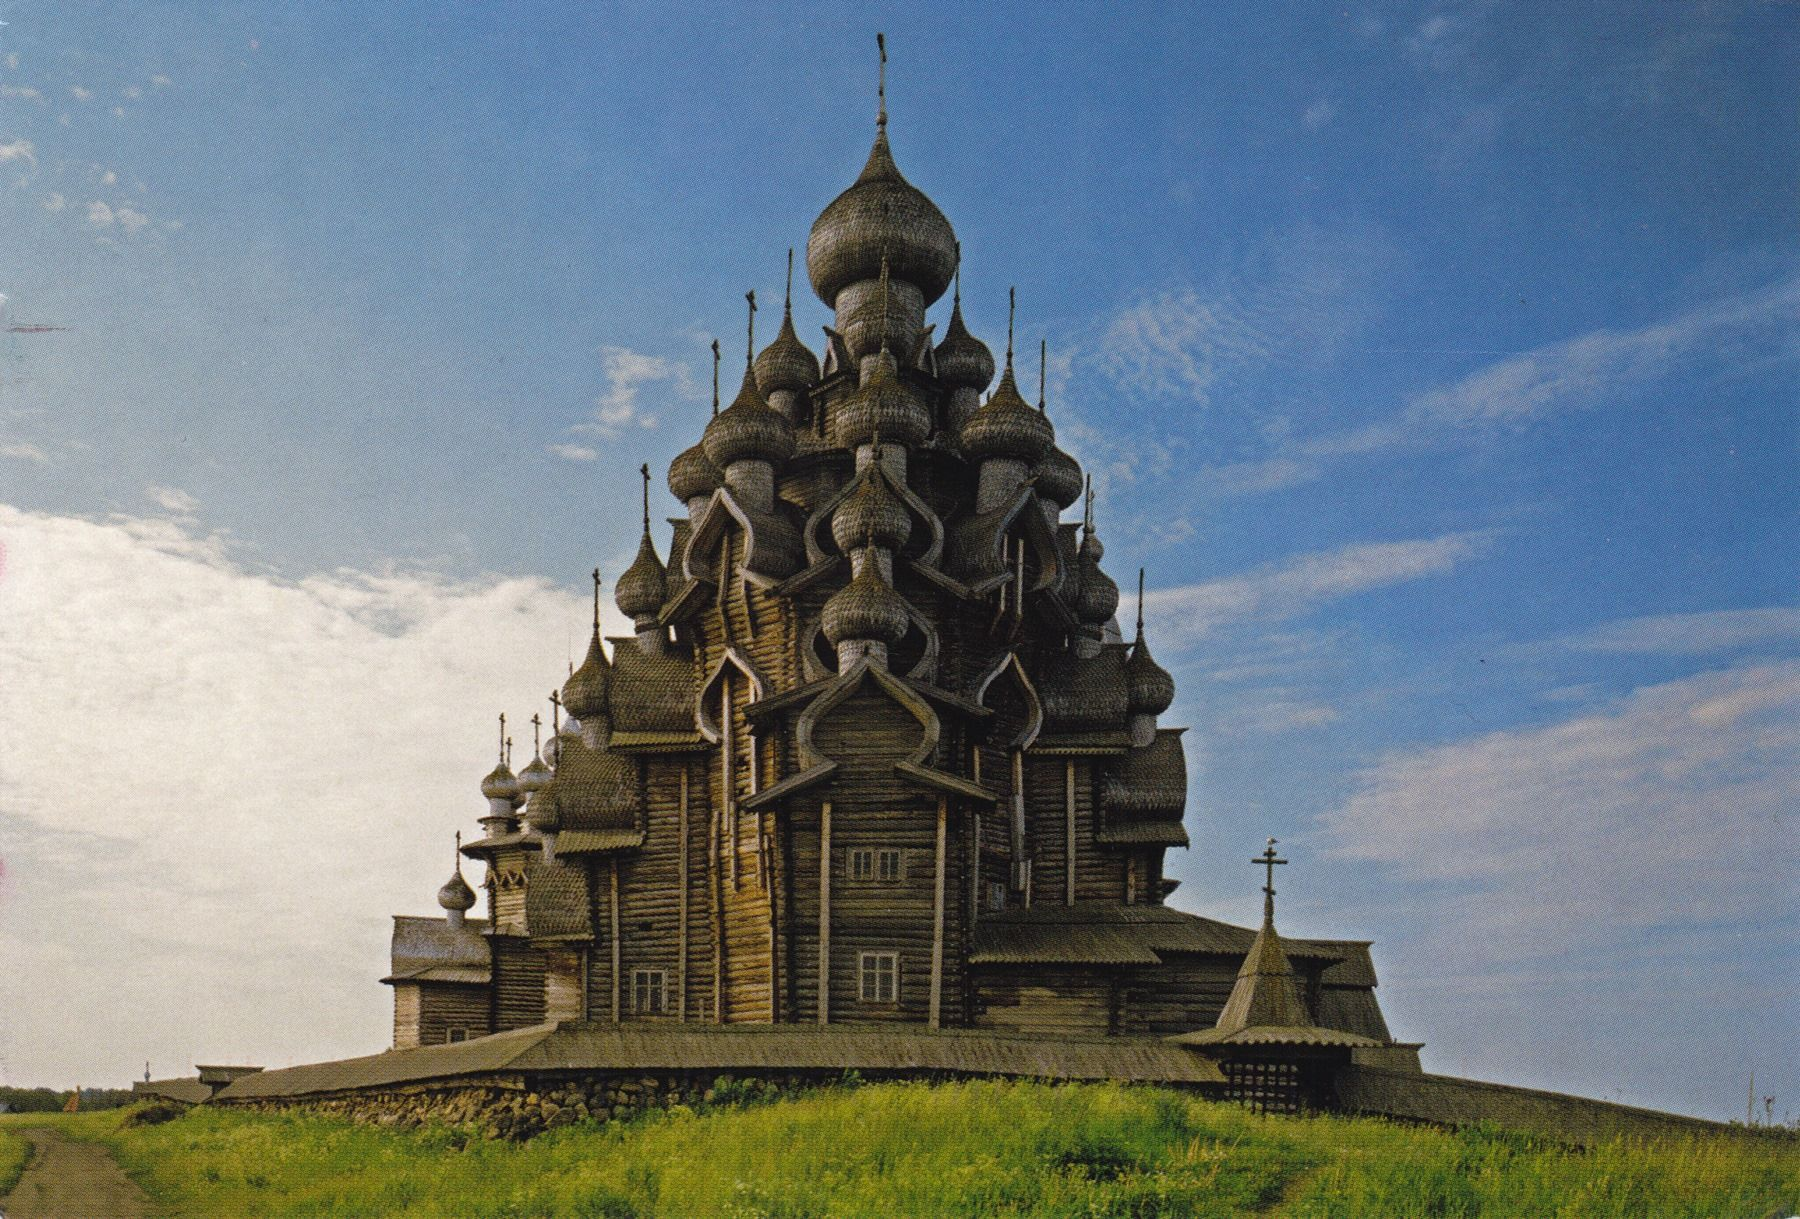 At Kizhi Island. Wooden churches on Kizhi island . Kizhi a small island located in the northern part of Lake Onega, in 68 kilometers from Petrozavodsk, Russia